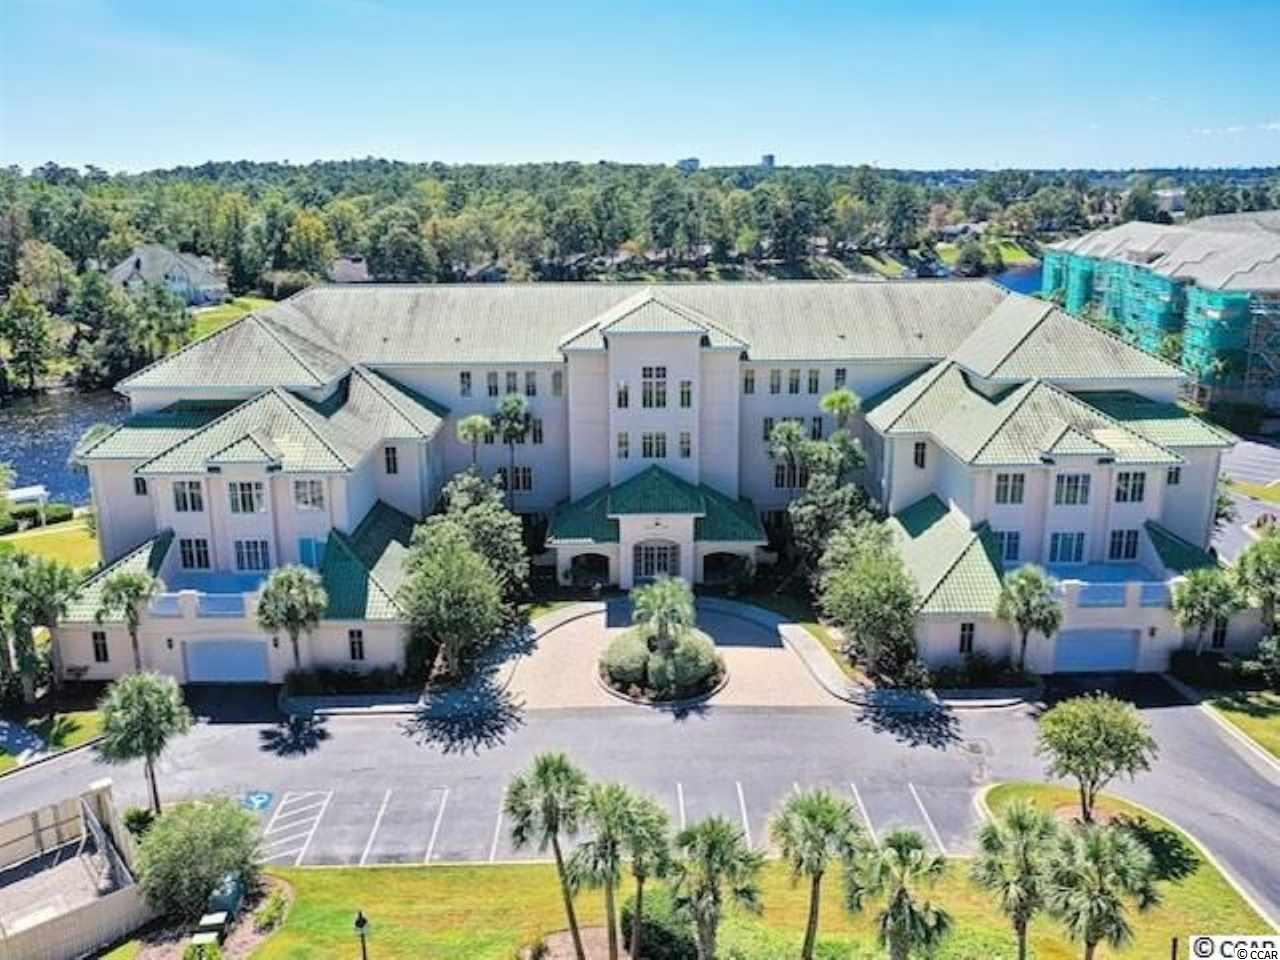 Welcome home to this elegant, 2 bed 2 bath, condo in the desirable Edgewater community right on the Intracoastal Waterway (ICW) at Barefoot Resort! Property includes a transferable golf membership and rare access to a boat rack to tie up a boat. This unit has been kept in pristine condition, with a lovely view of the ICW and manicured landscape of the grounds. Features include a  washer & dryer, stainless steel appliances, tile floors and carpet throughout,  screened-in balcony, and an amazing master suite with tray ceiling, walk-in closet, and an ensuite bath with dual sinks, large garden tub and walk-in shower. Edgewater is truly a dream location for owners who want the ease of less maintenance responsibility and, overlooking the ICW and the fun of amazing amenities including walking trails, fishing areas, recently restored boat docks, the Barefoot Marina and a private oceanfront cabana with gated private parking for owners and guests and a summer shuttle service to and from the beach.  Edgewater residents enjoy the security of a gated community and the luxury of access to social clubhouse, two pool areas equipped with a deck and cabanas, a hot tub & state of the art fitness center, as well as Barefoot Resorts 4 championship golf courses with 2 clubhouses & a driving range and use of the North Tower pool. You have the best of waterway living and easy access to all the shopping, dining and entertainment the Grand Strand has to offer!